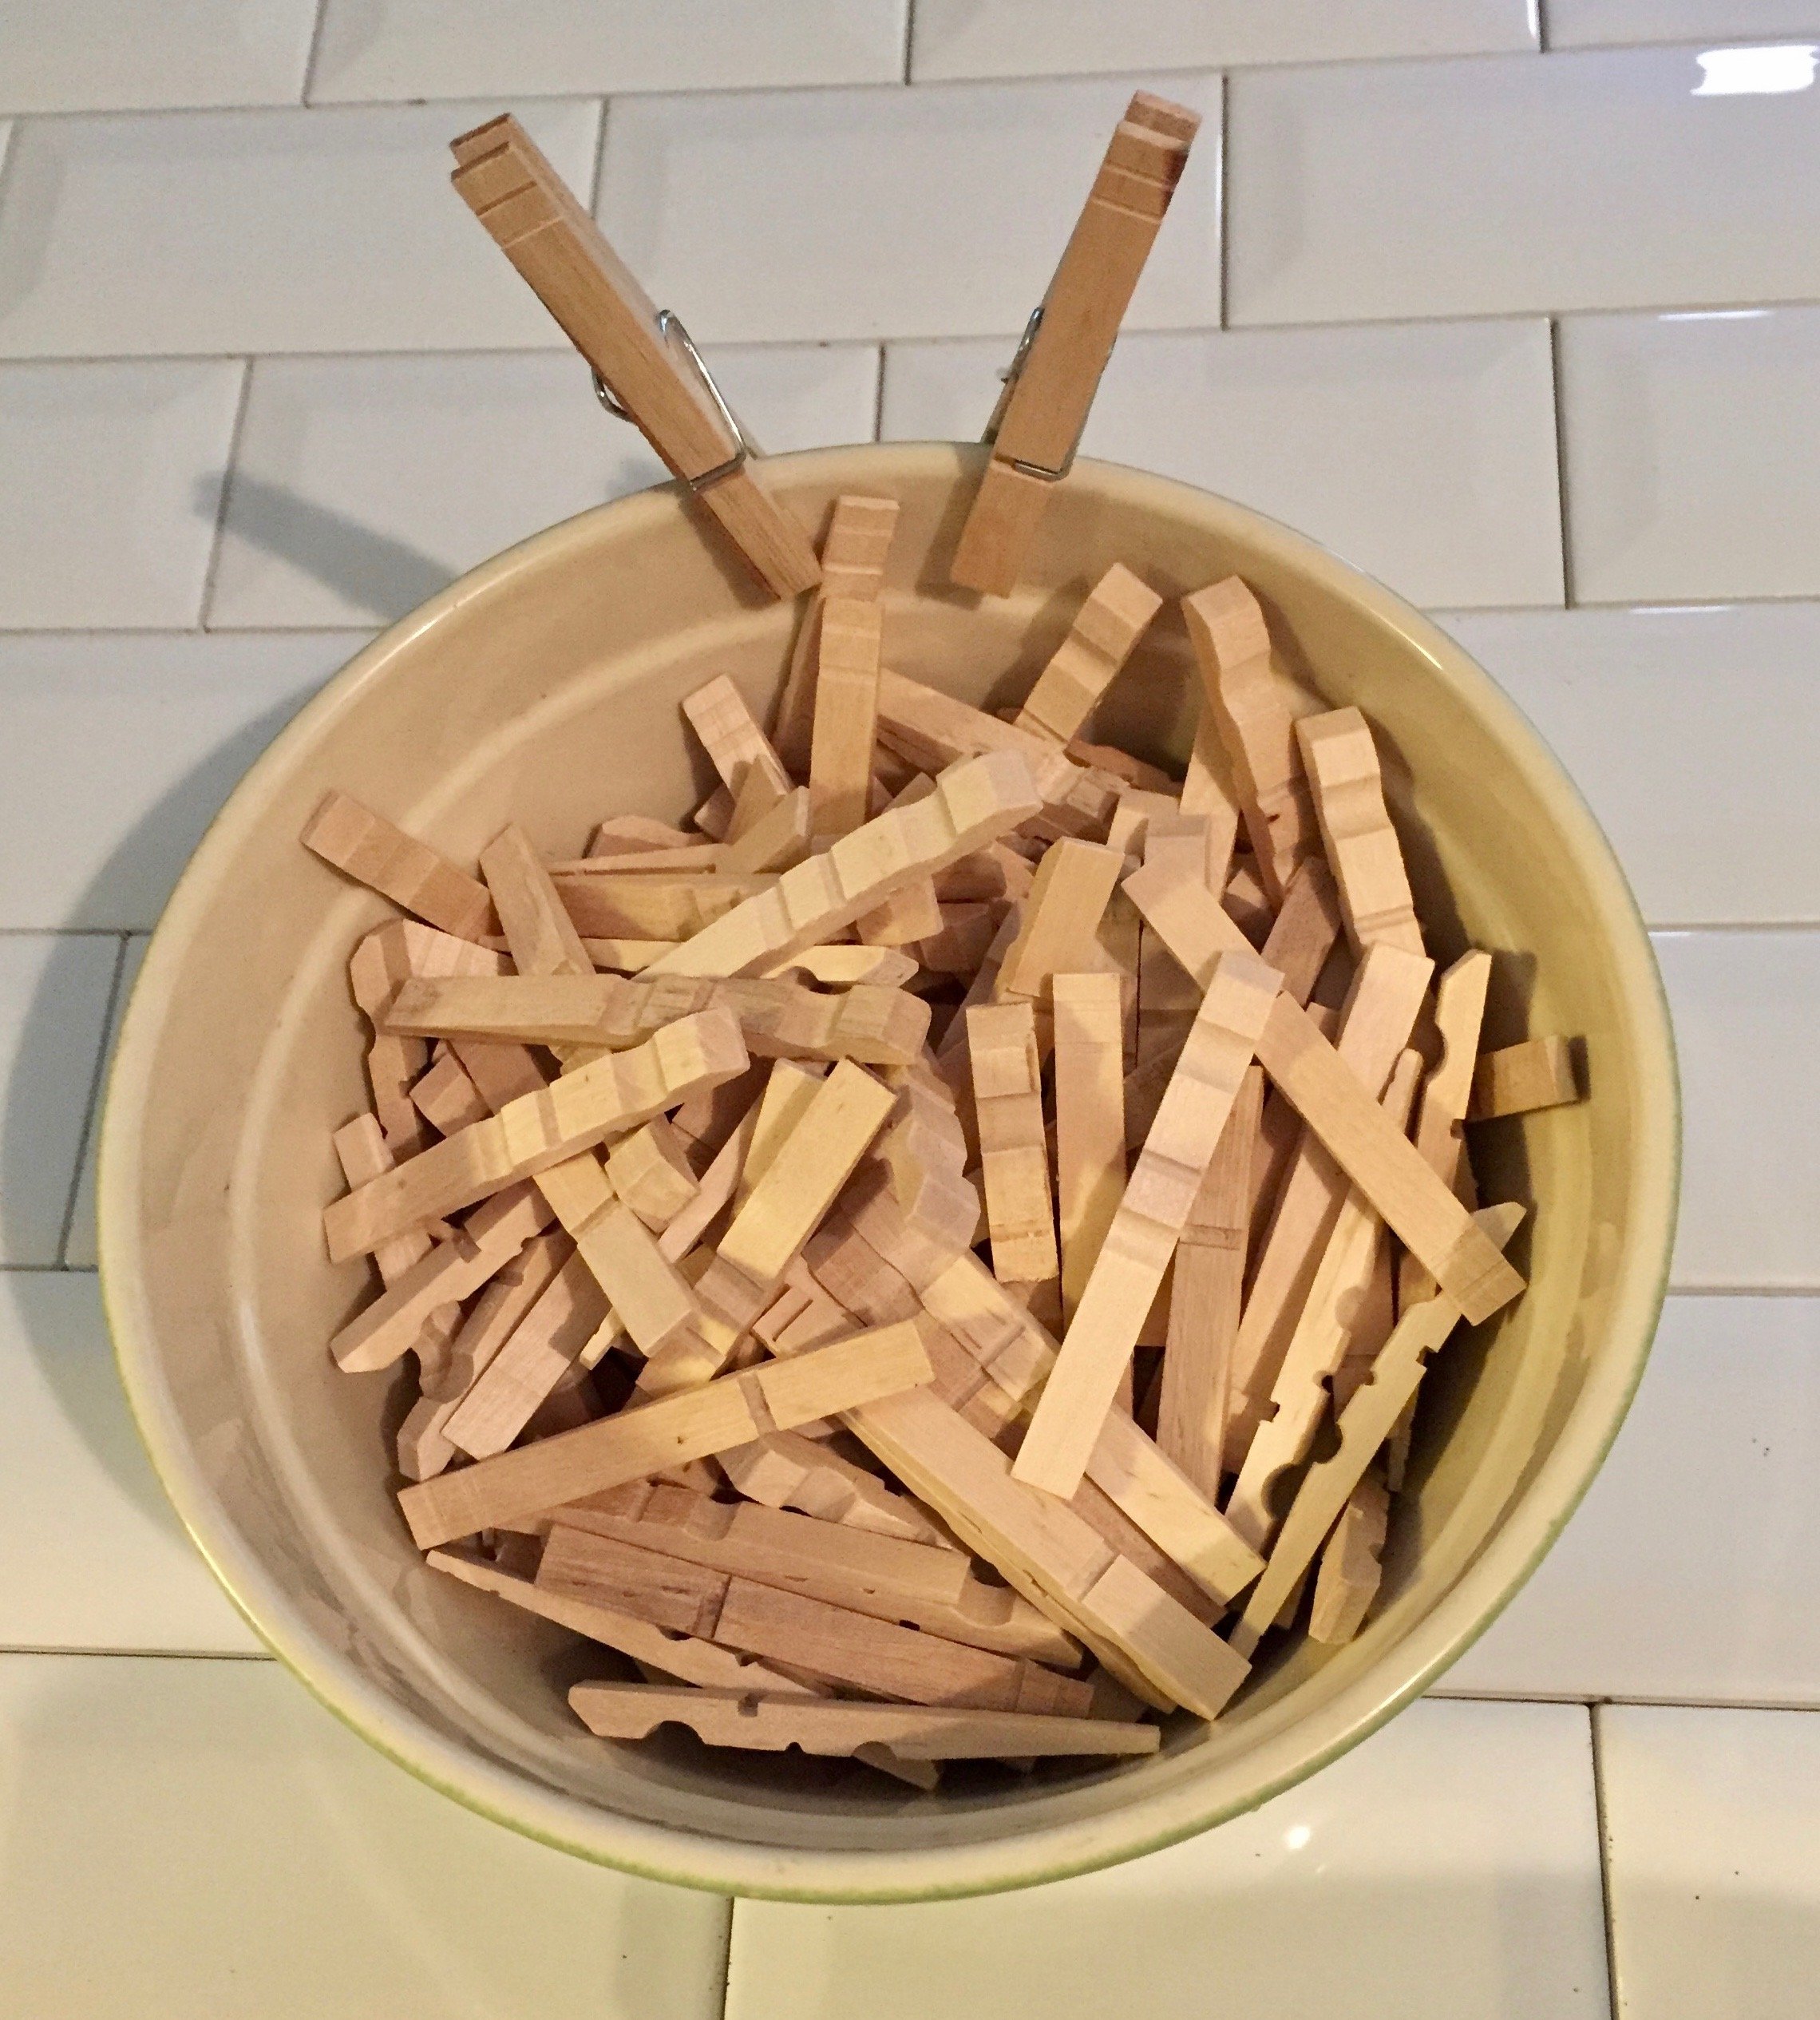 This is my gaint bowl of clothespins I brought two packs of 50, that's 200 indidual pieces. haha